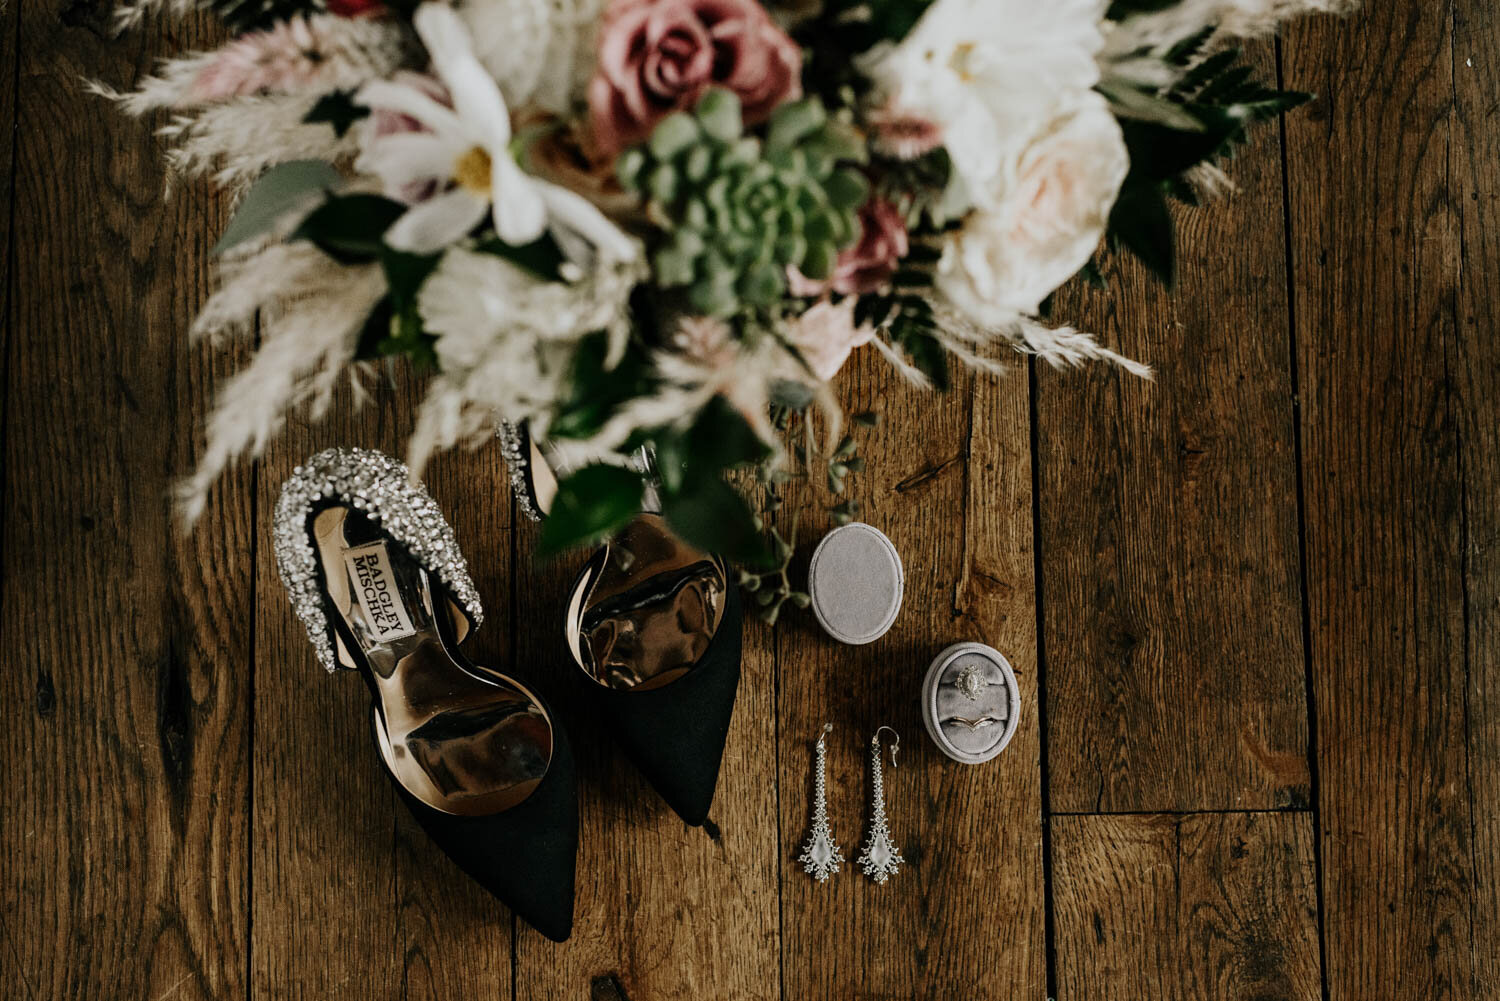 Elopement Wedding Photographer For Adventurous Couples Based In Colorado Travels Often Between California Texas Utah Arizona National Parks And Internationally Nicole Is An Expert Guide For Unconventional Weddings And Adventurous